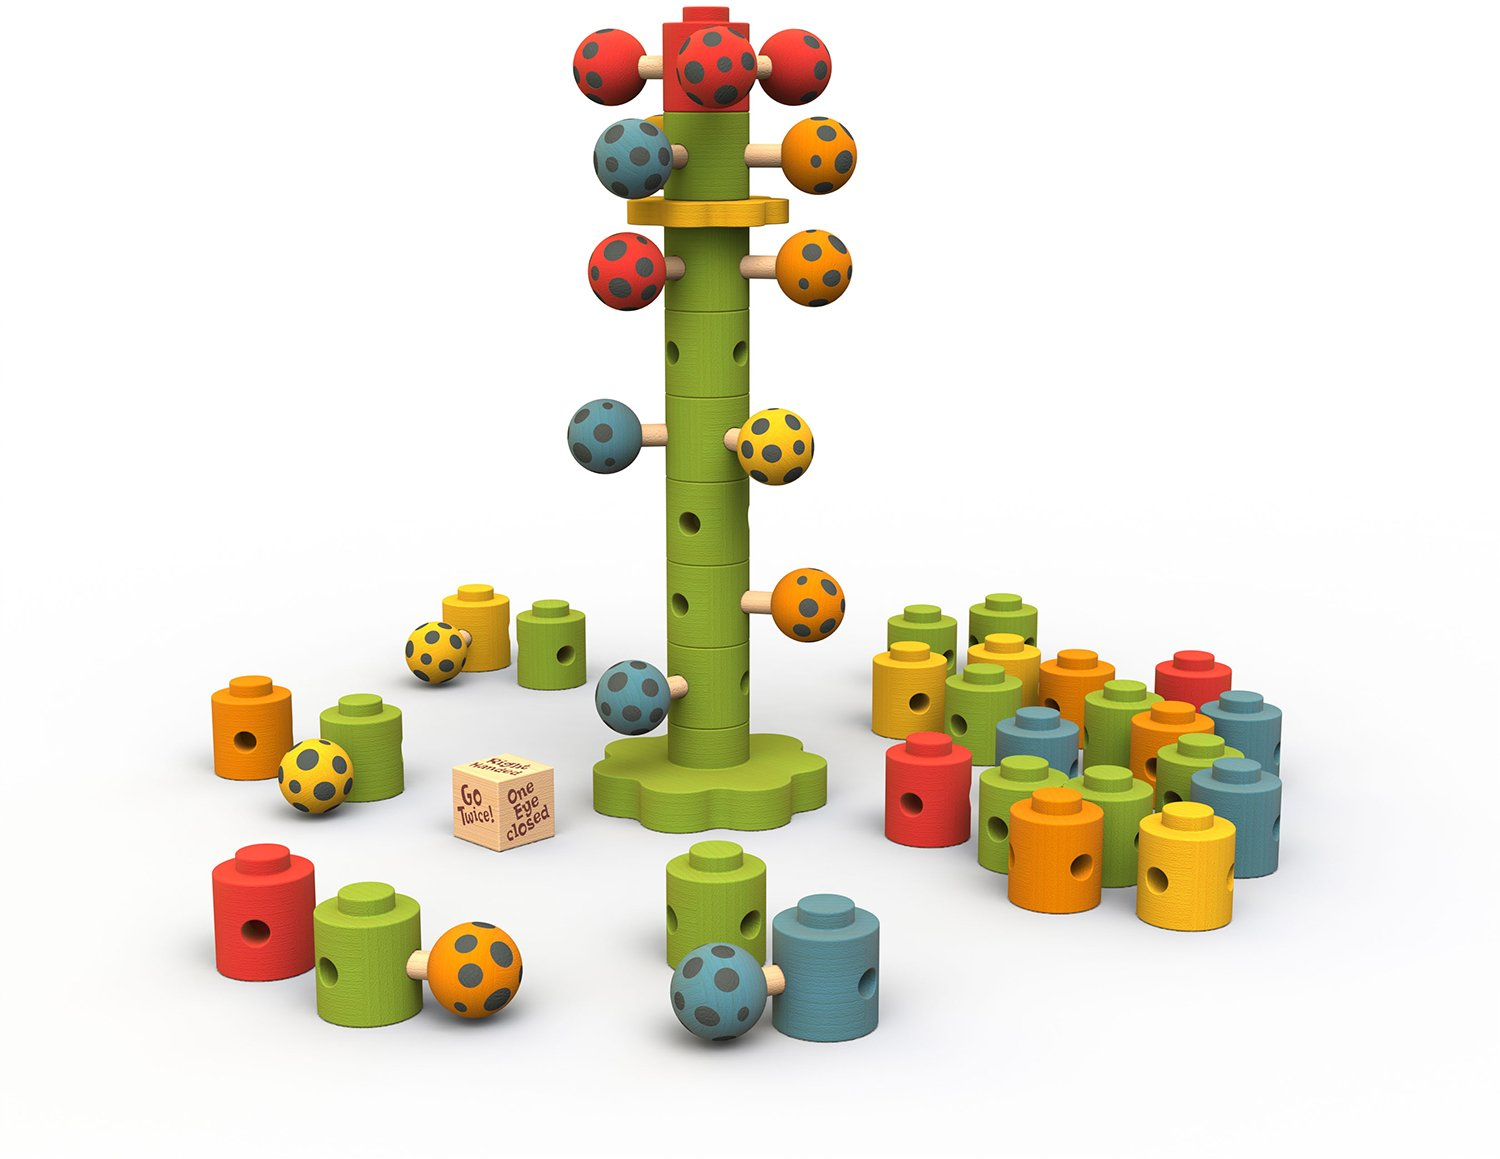 BeginAgain - Ladybug Flower Tower Game, Make Learning Fun and Help Spark Your Child's Imagination, Helps Promote Cooperative Play and Develop Motor Skills (For Kids 3 and Up)